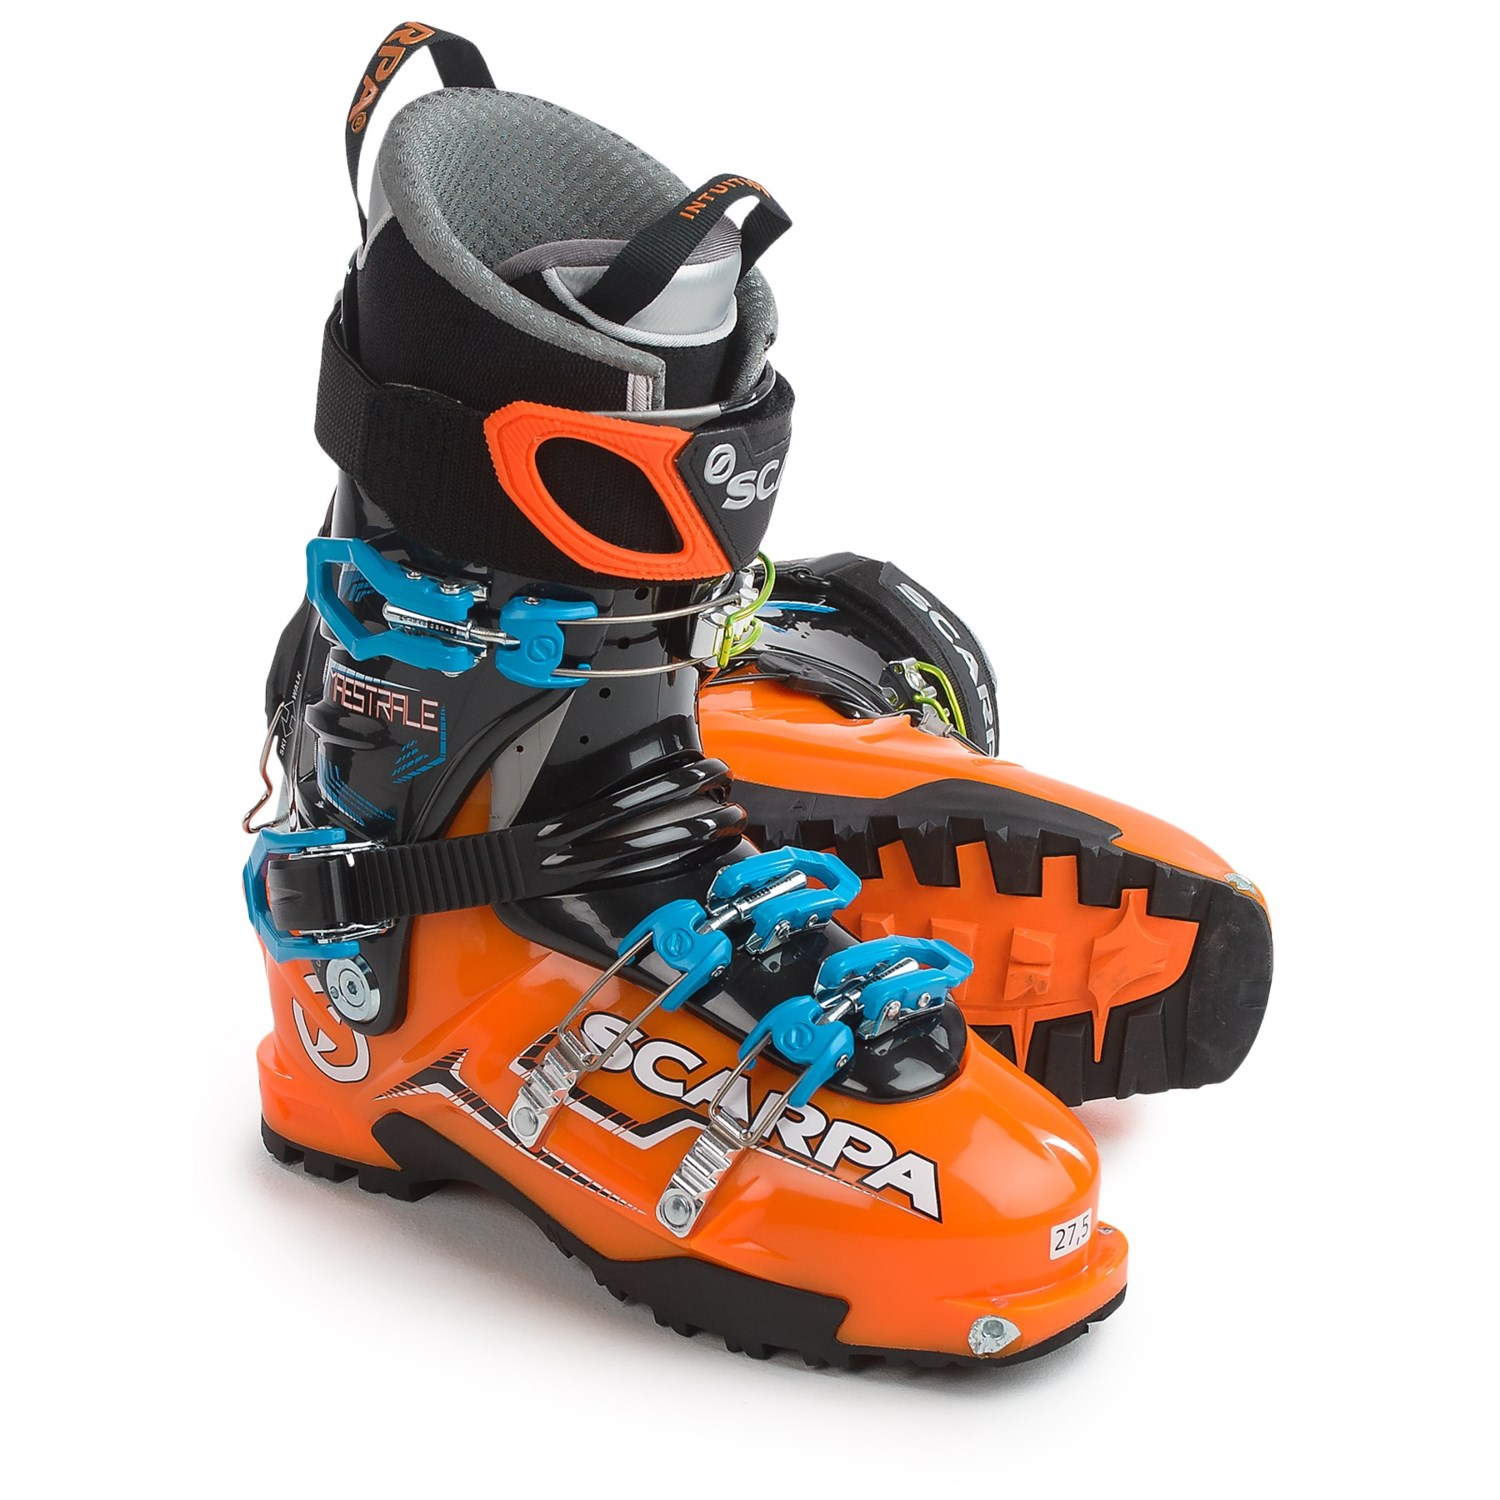 Ski Touring Boots Review